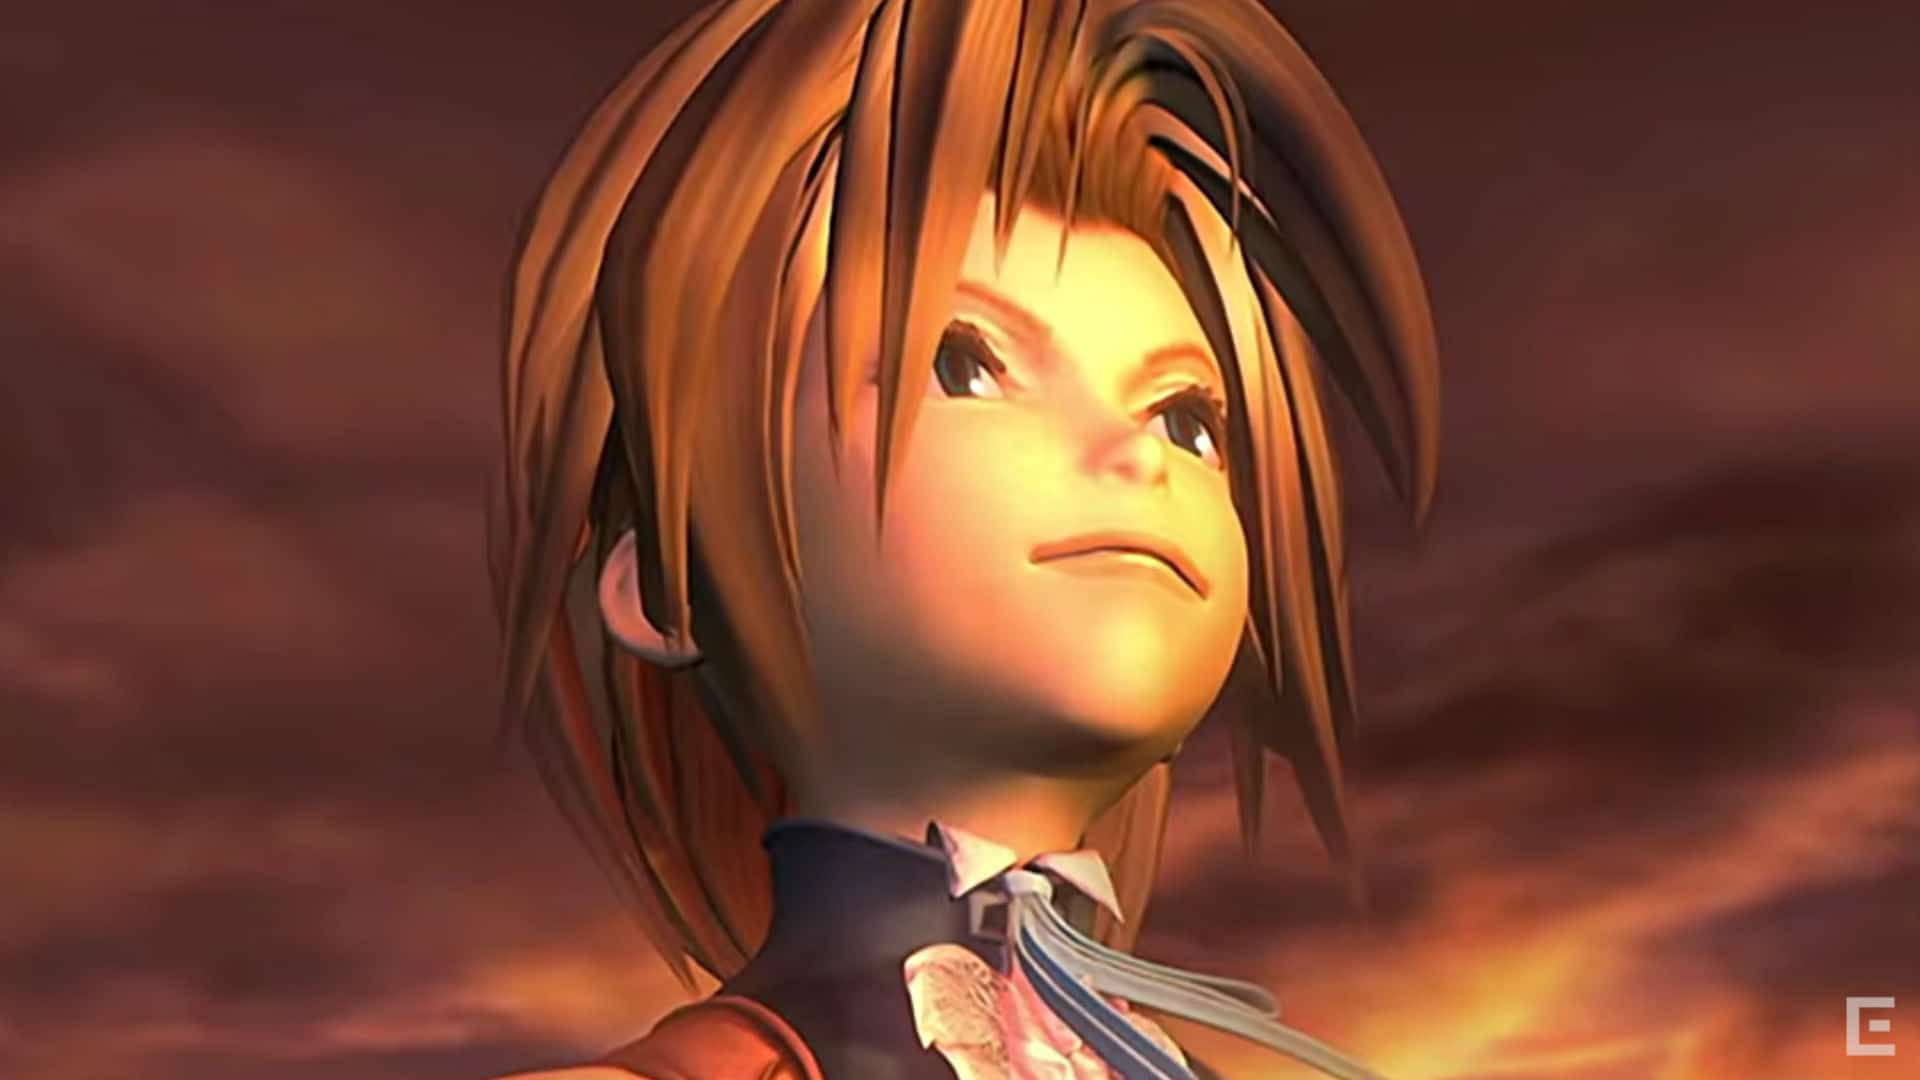 Final Fantasy Ix Now On App Store And Google Play